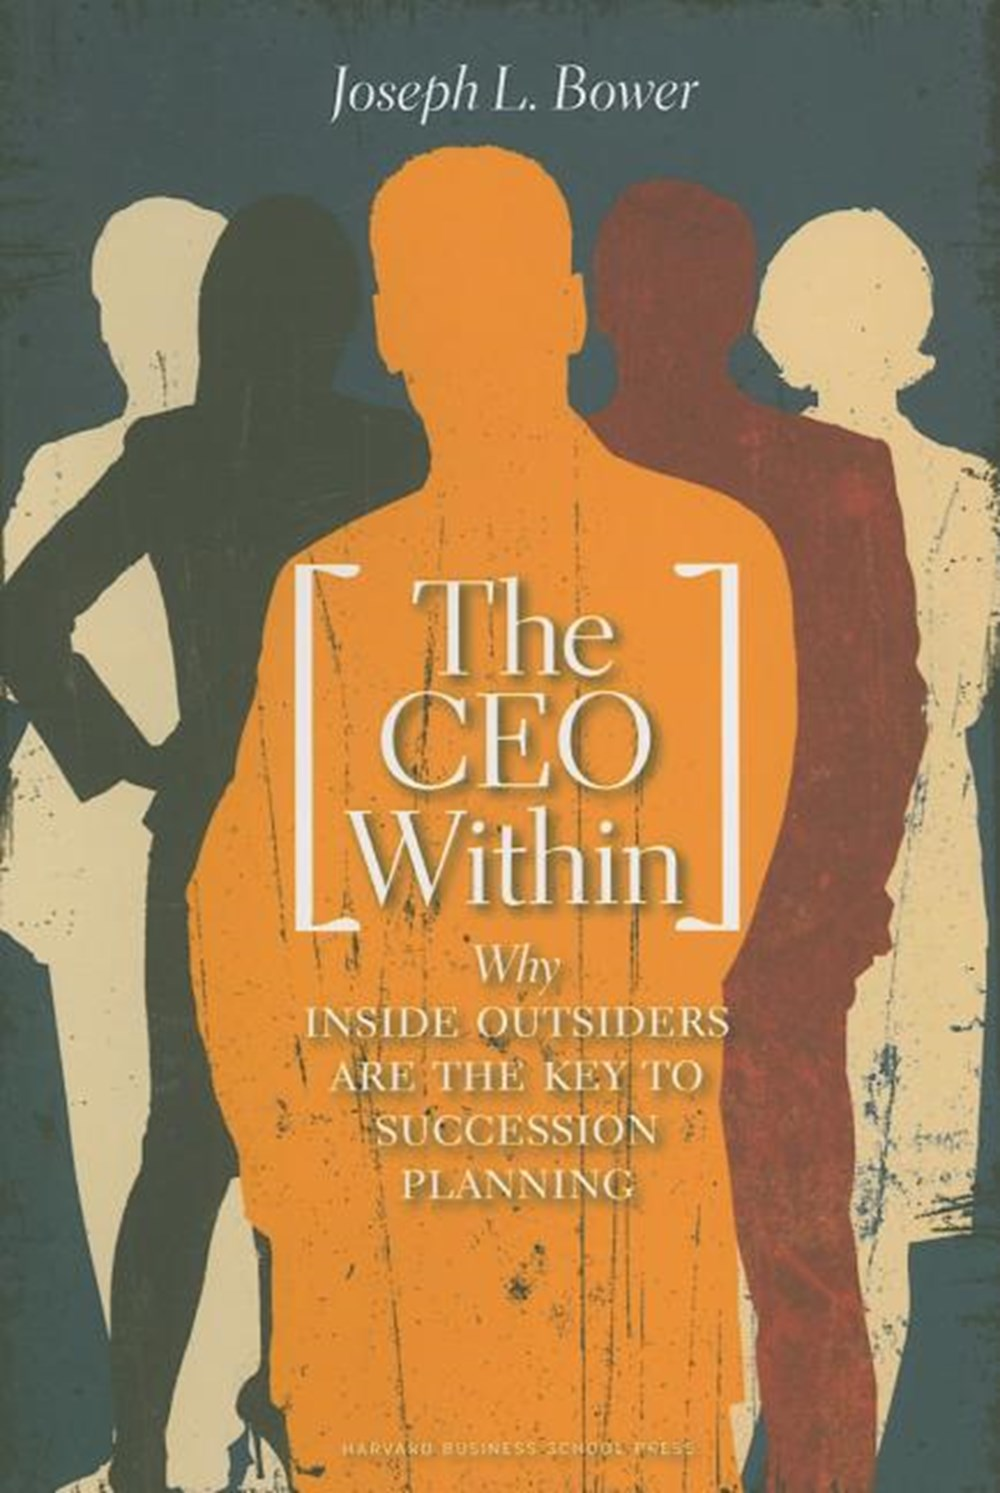 CEO Within Why Inside Outsiders Are the Key to Succession